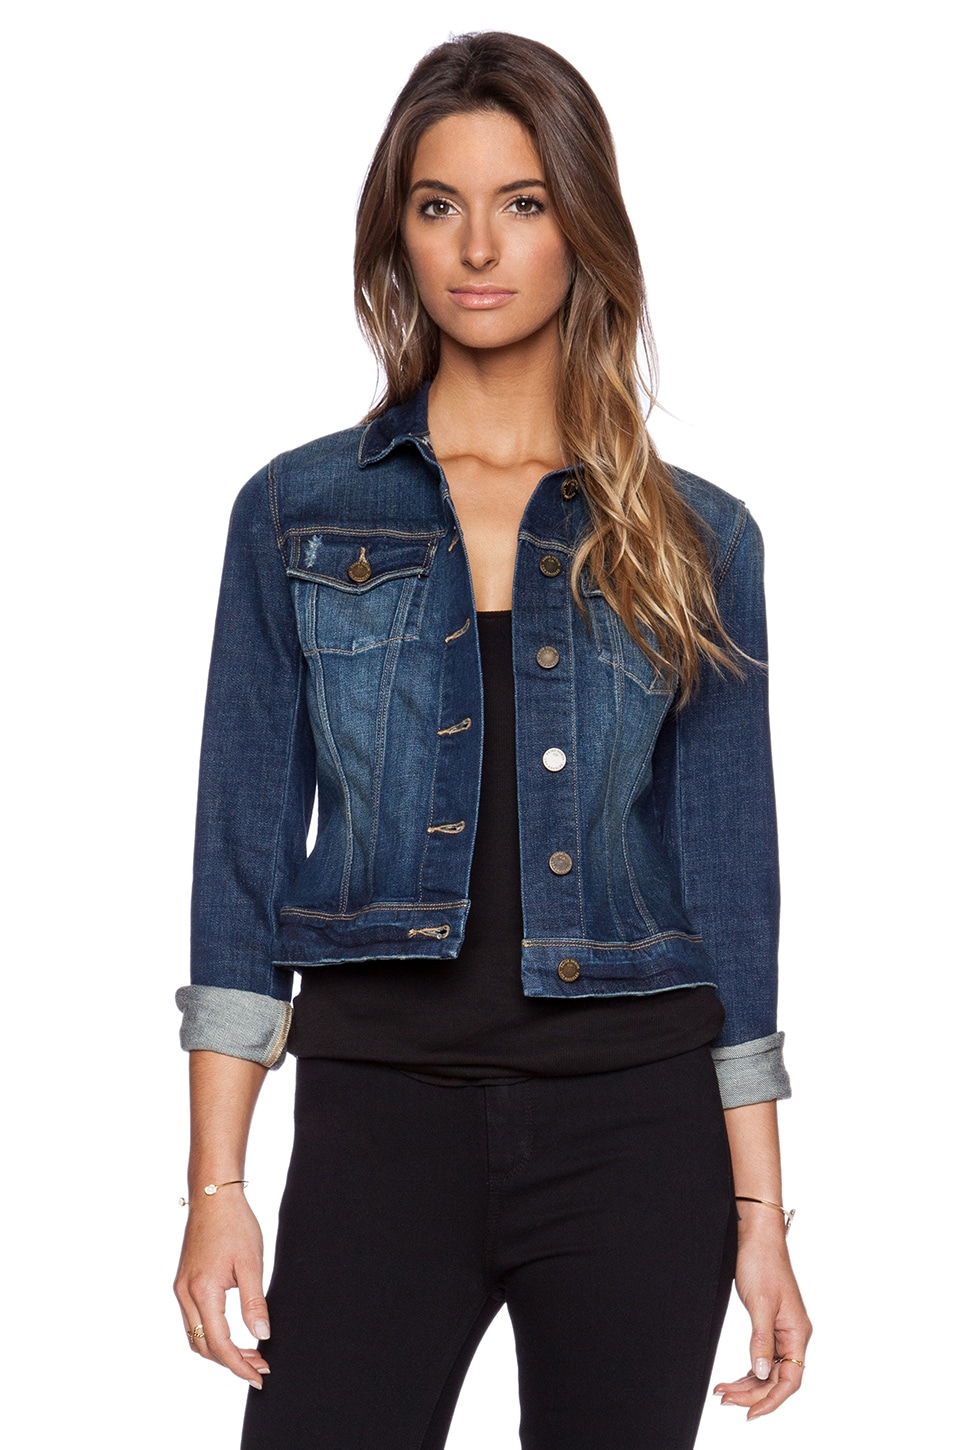 Paige Denim Vermont Jacket in Havana